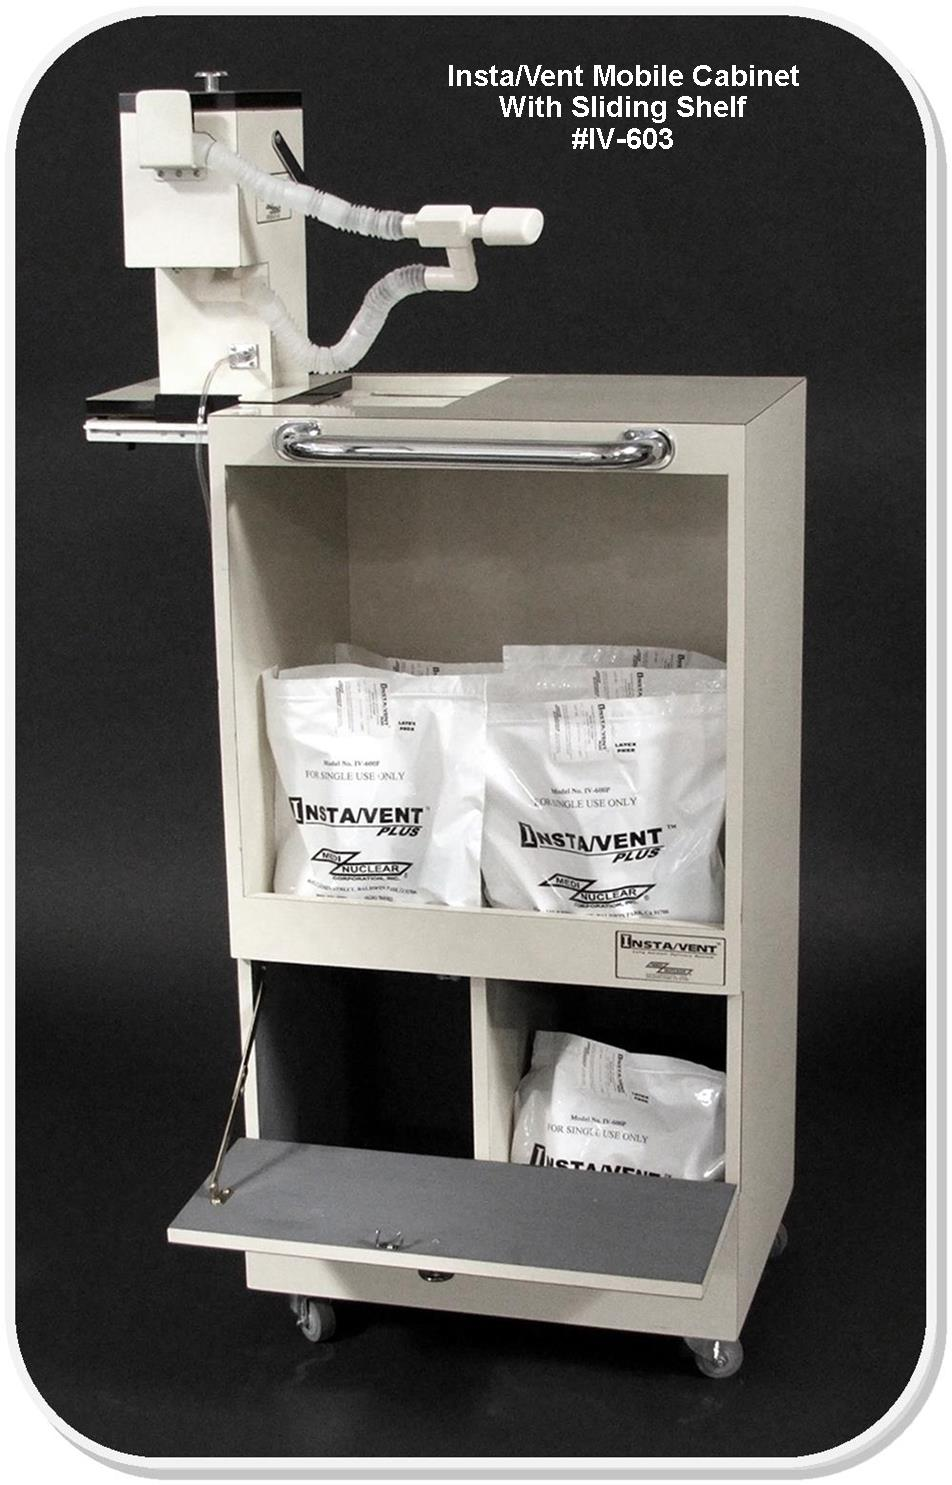 Mobile Cabinets For Radioaerosol Delivery